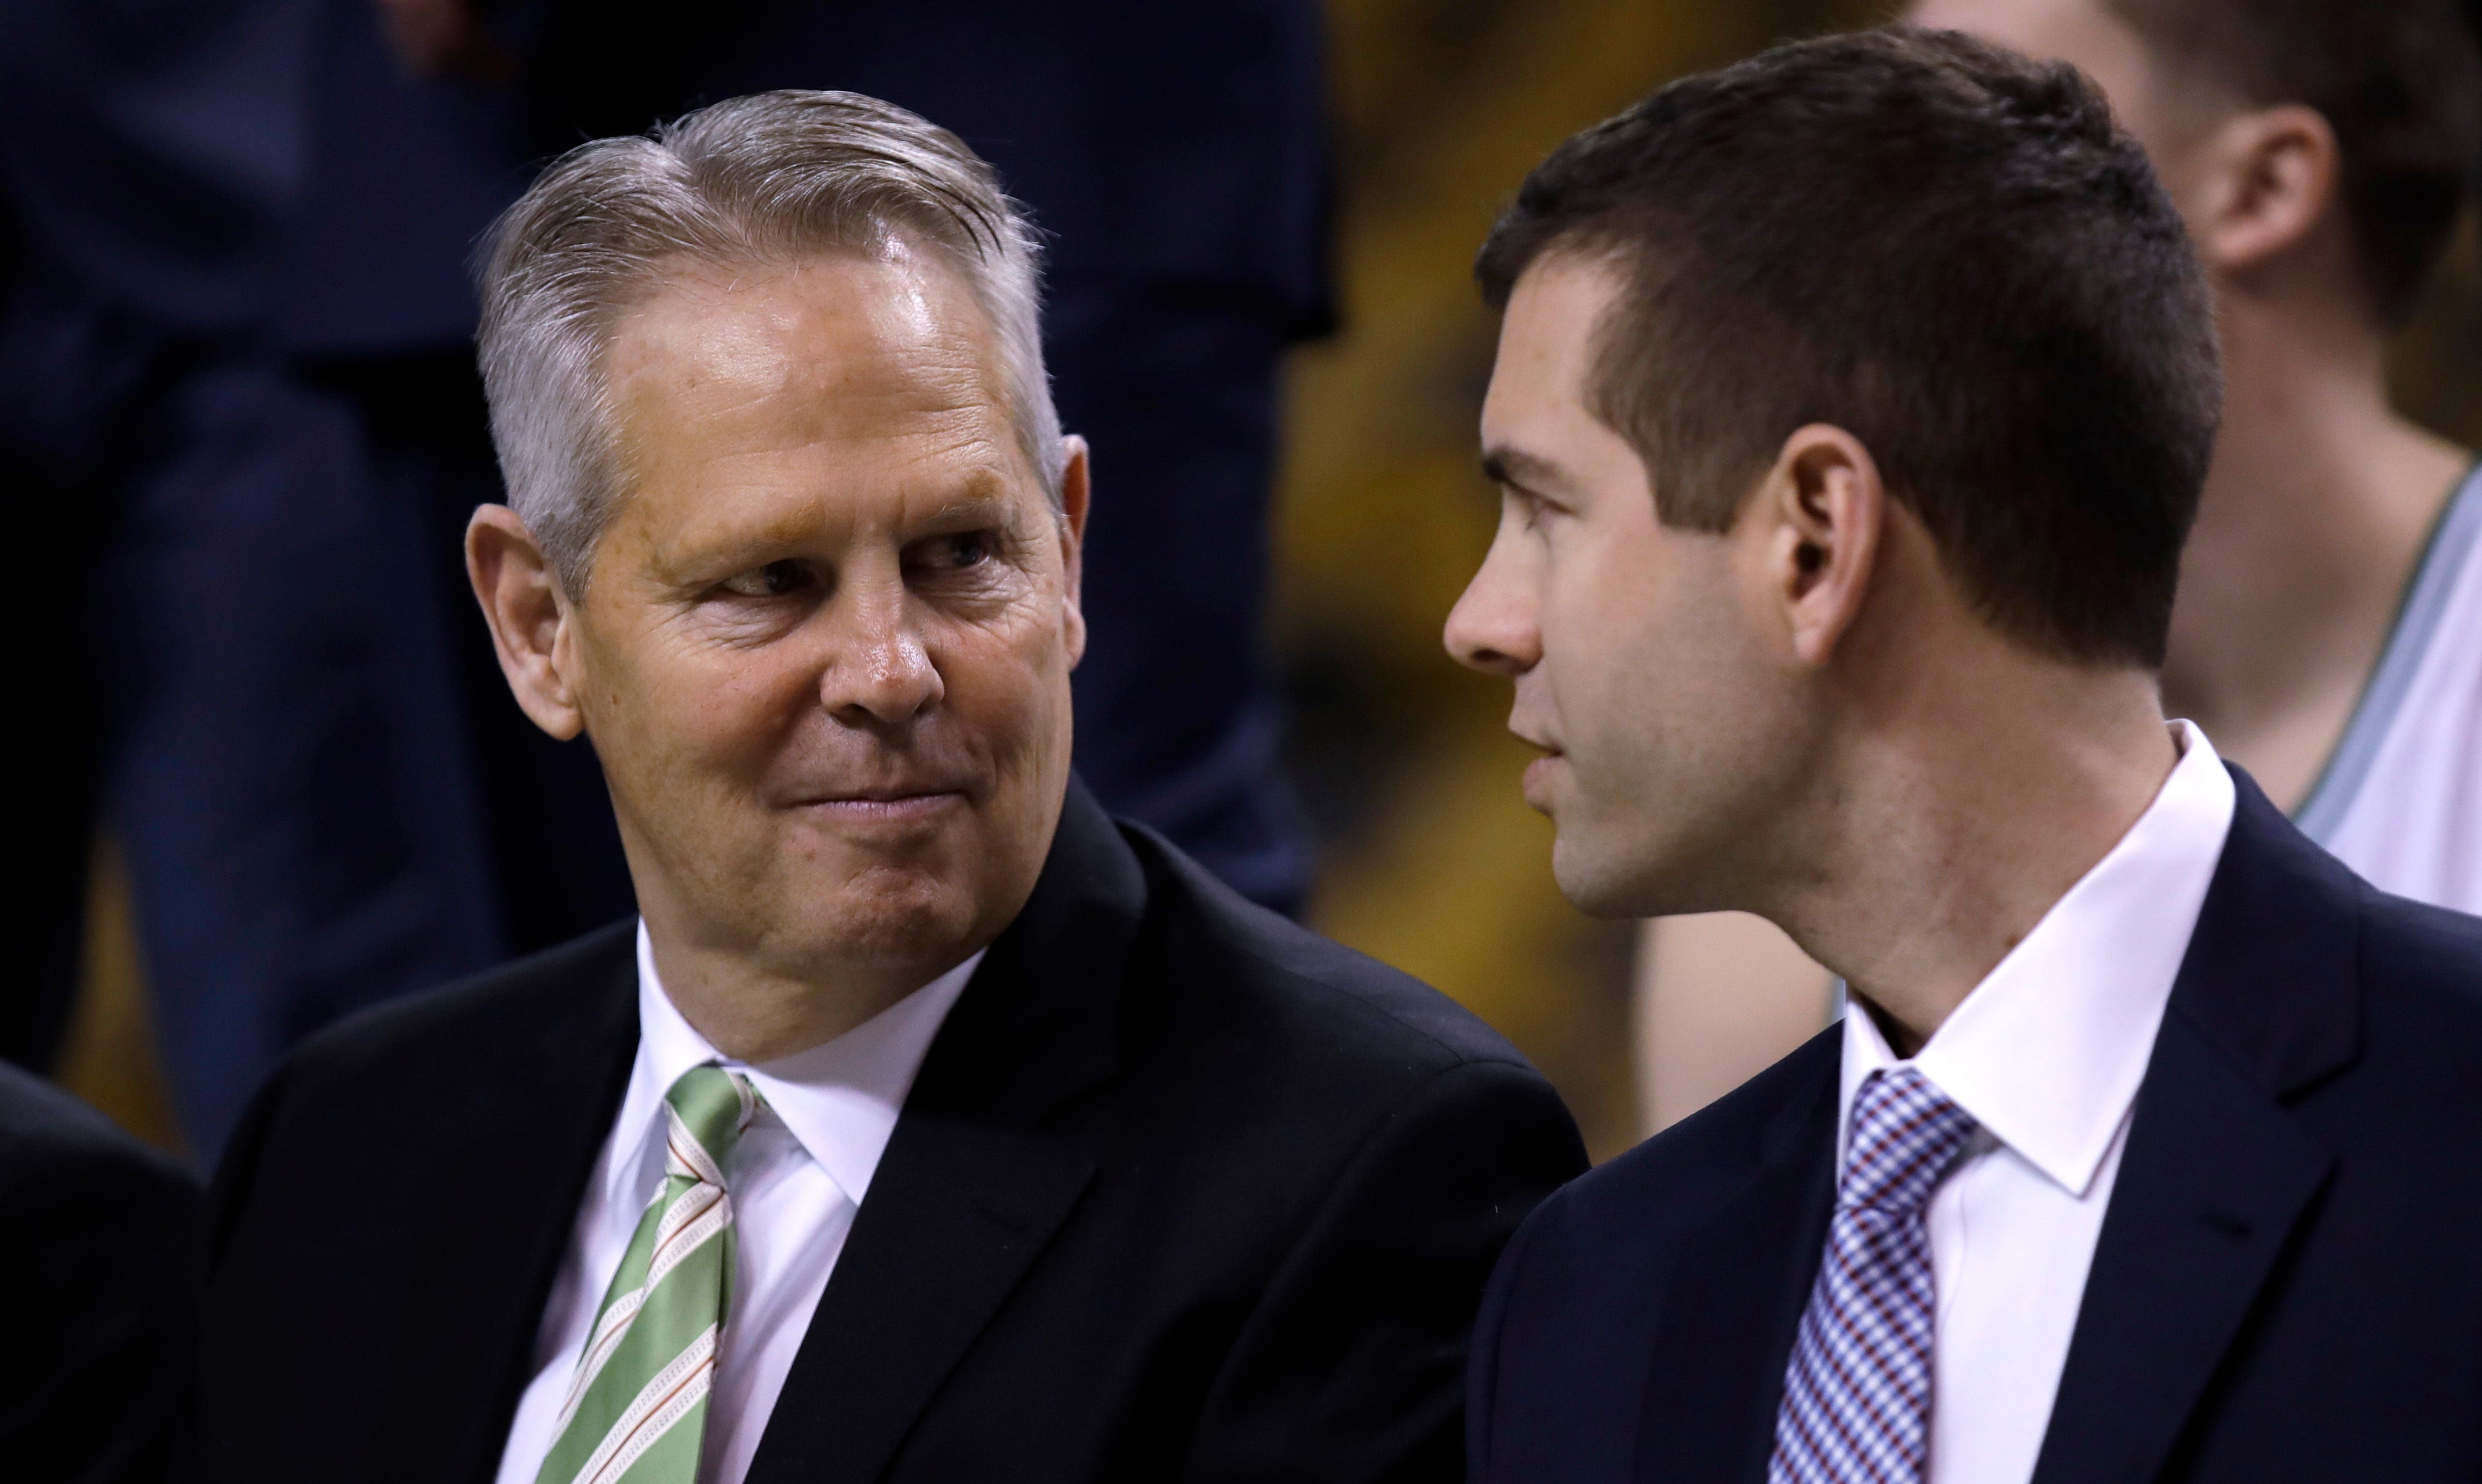 Danny Ainge out as Celtics president, Brad Stevens moves from coach to front office